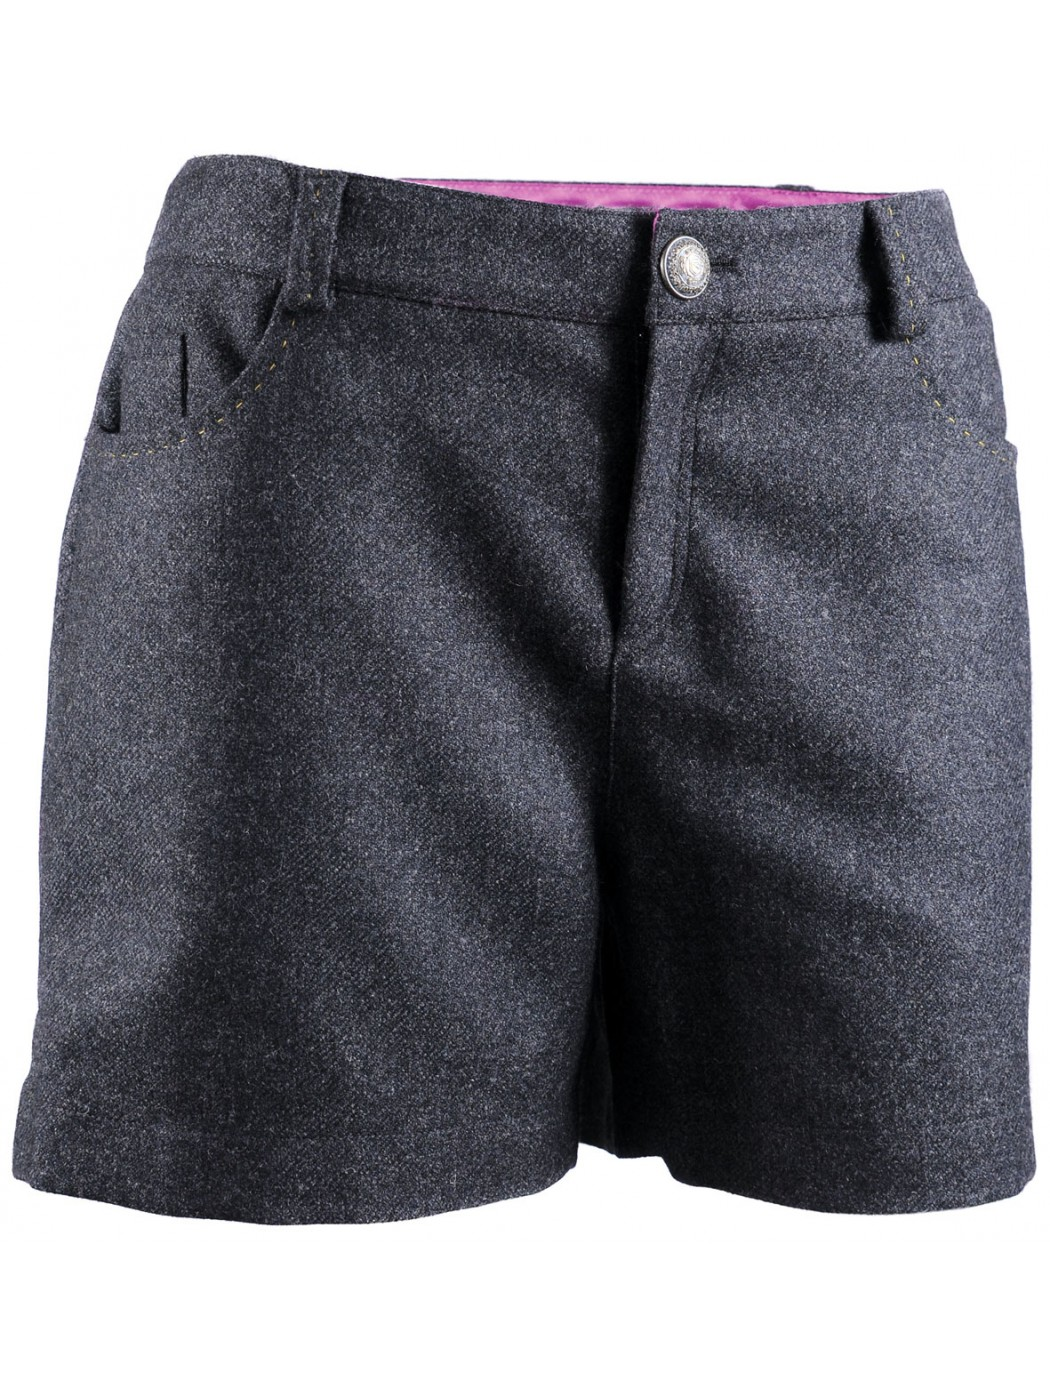 buttercup-shorts-charcoal